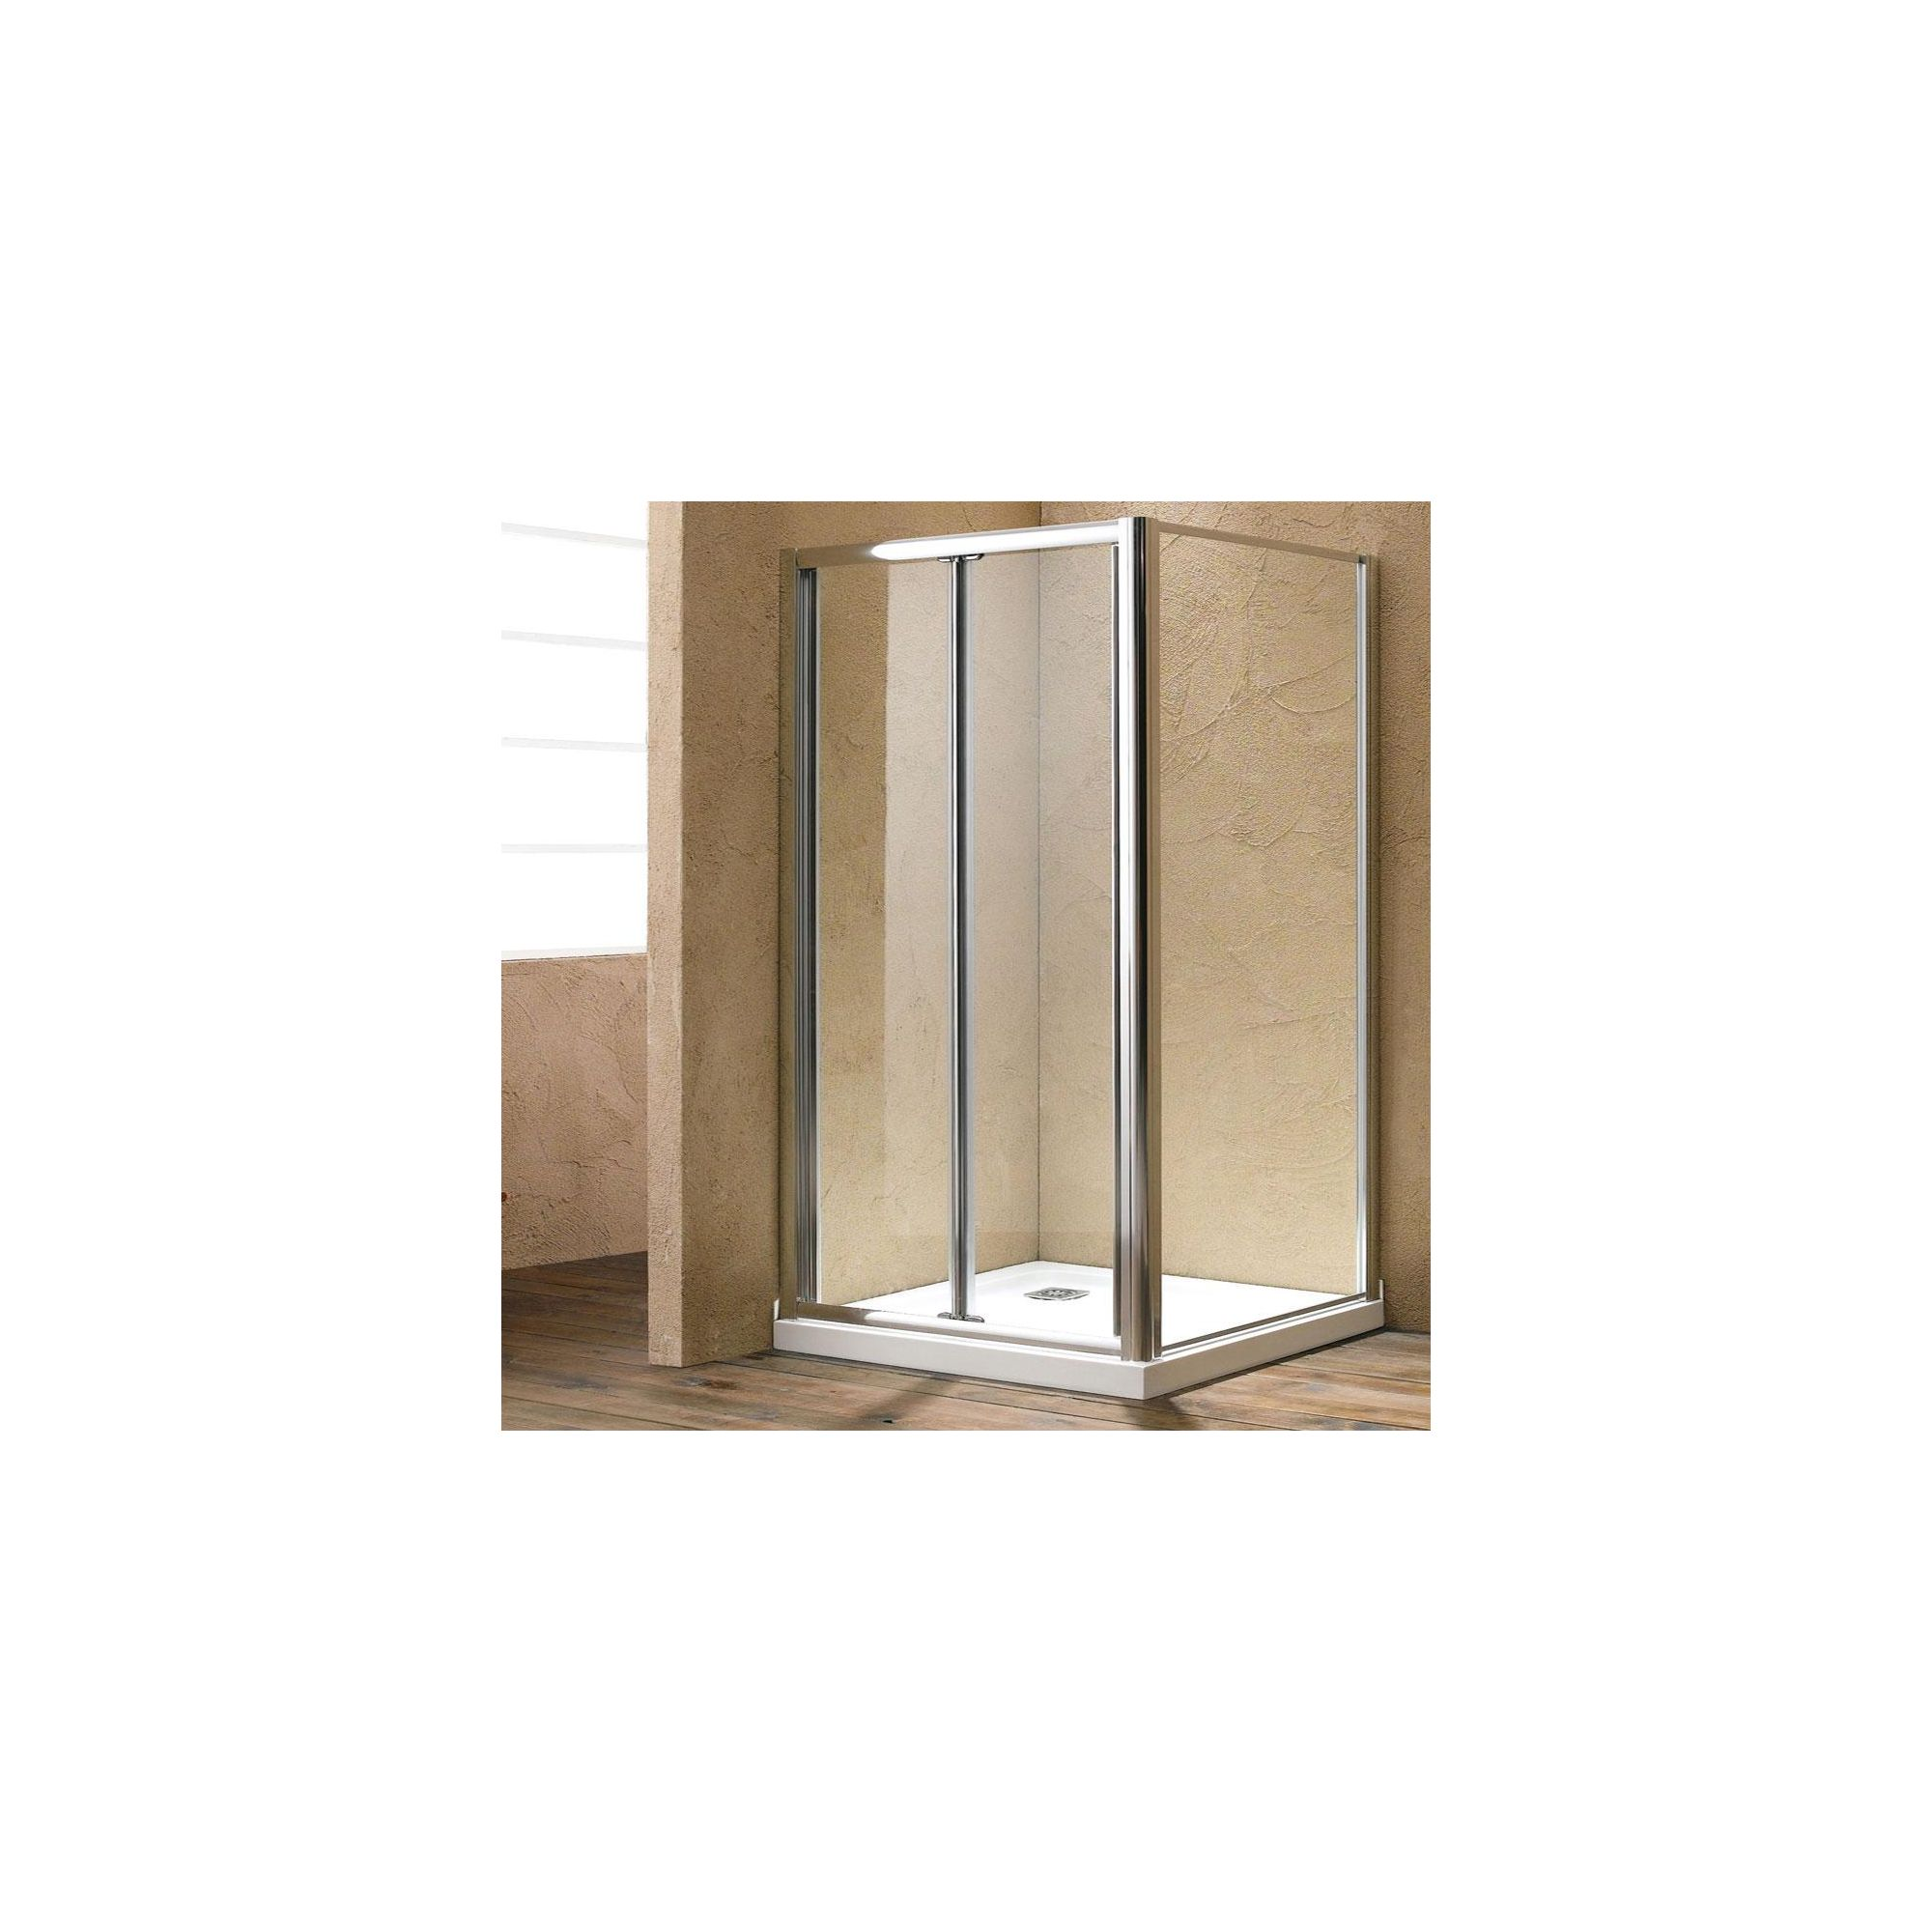 Duchy Style Single Bi-Fold Door Shower Enclosure, 900mm x 800mm, 6mm Glass, Low Profile Tray at Tesco Direct